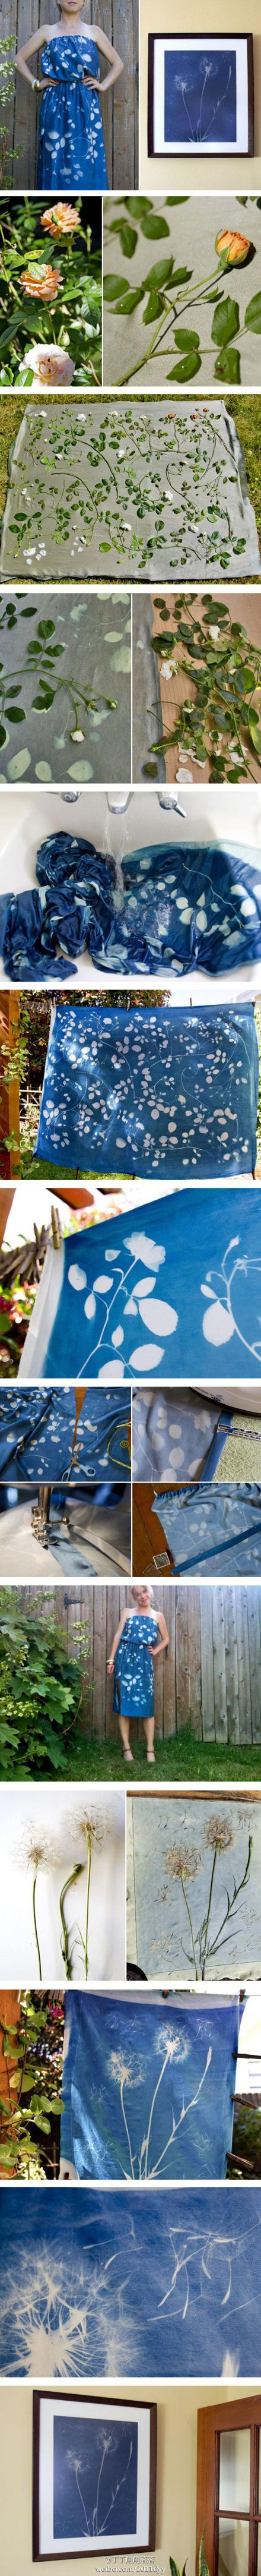 How to make Beautifully Painted Fabric step by step DIY tutorial instructions